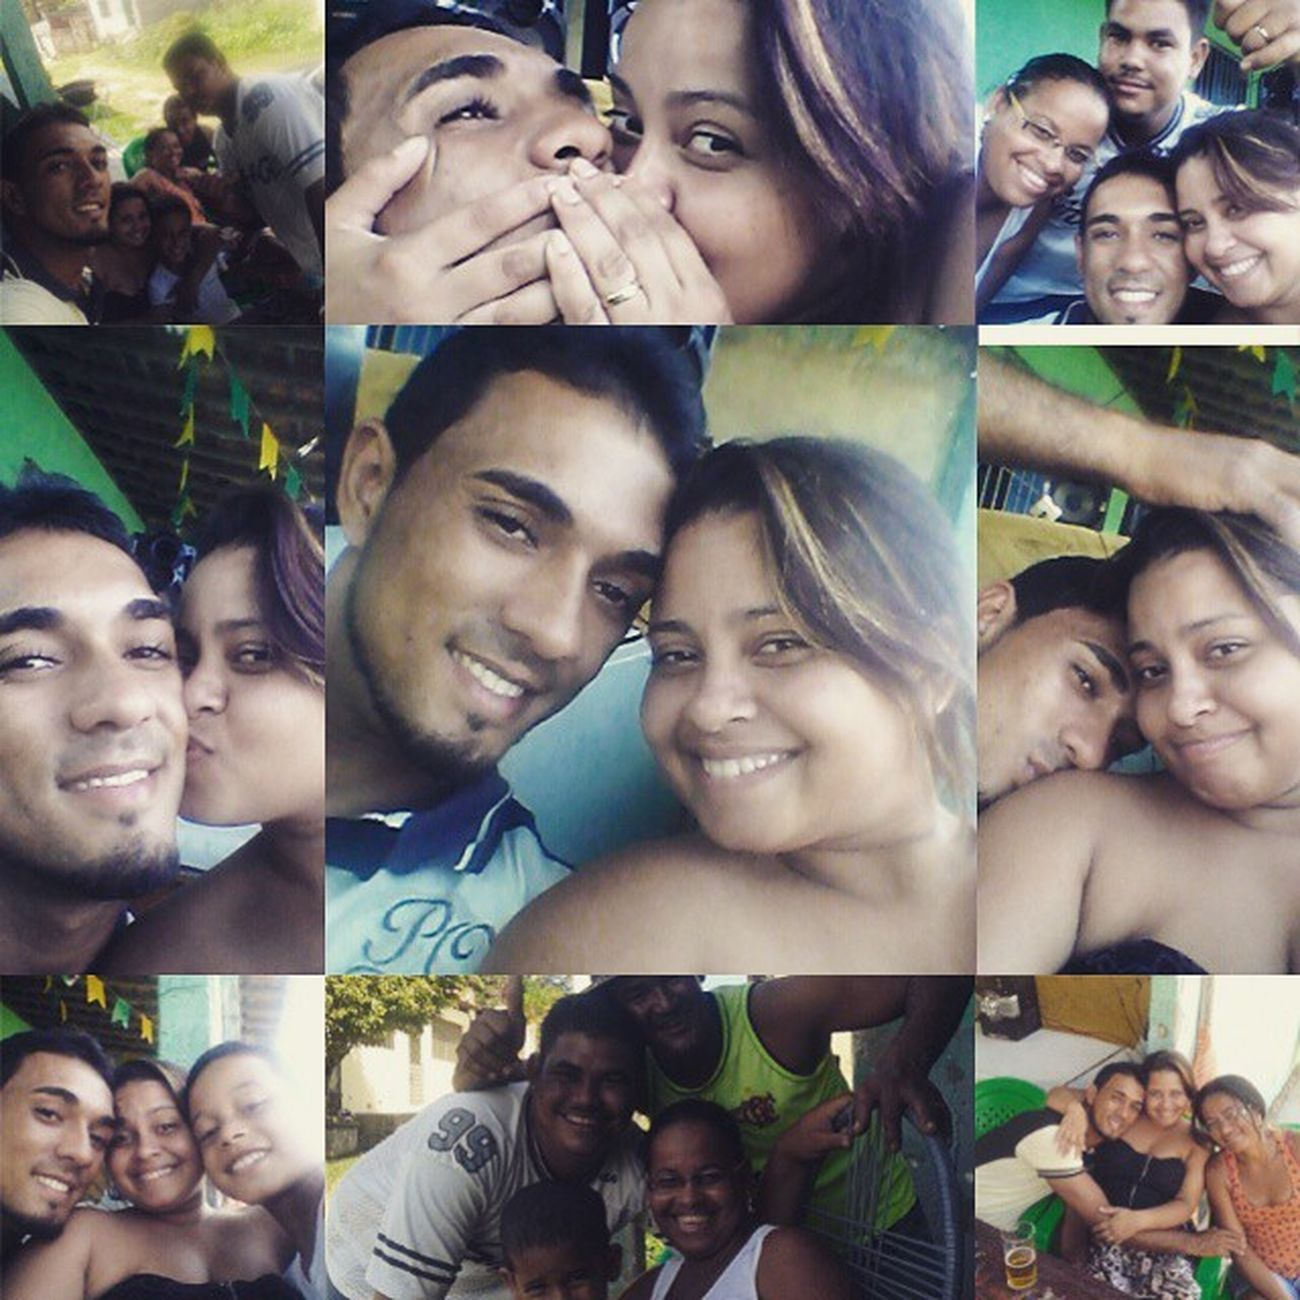 Domingo mais que LINDO!! Family Friends Love Maisquelindo Maridoesposo Presente TudoquepediraDeus Happy